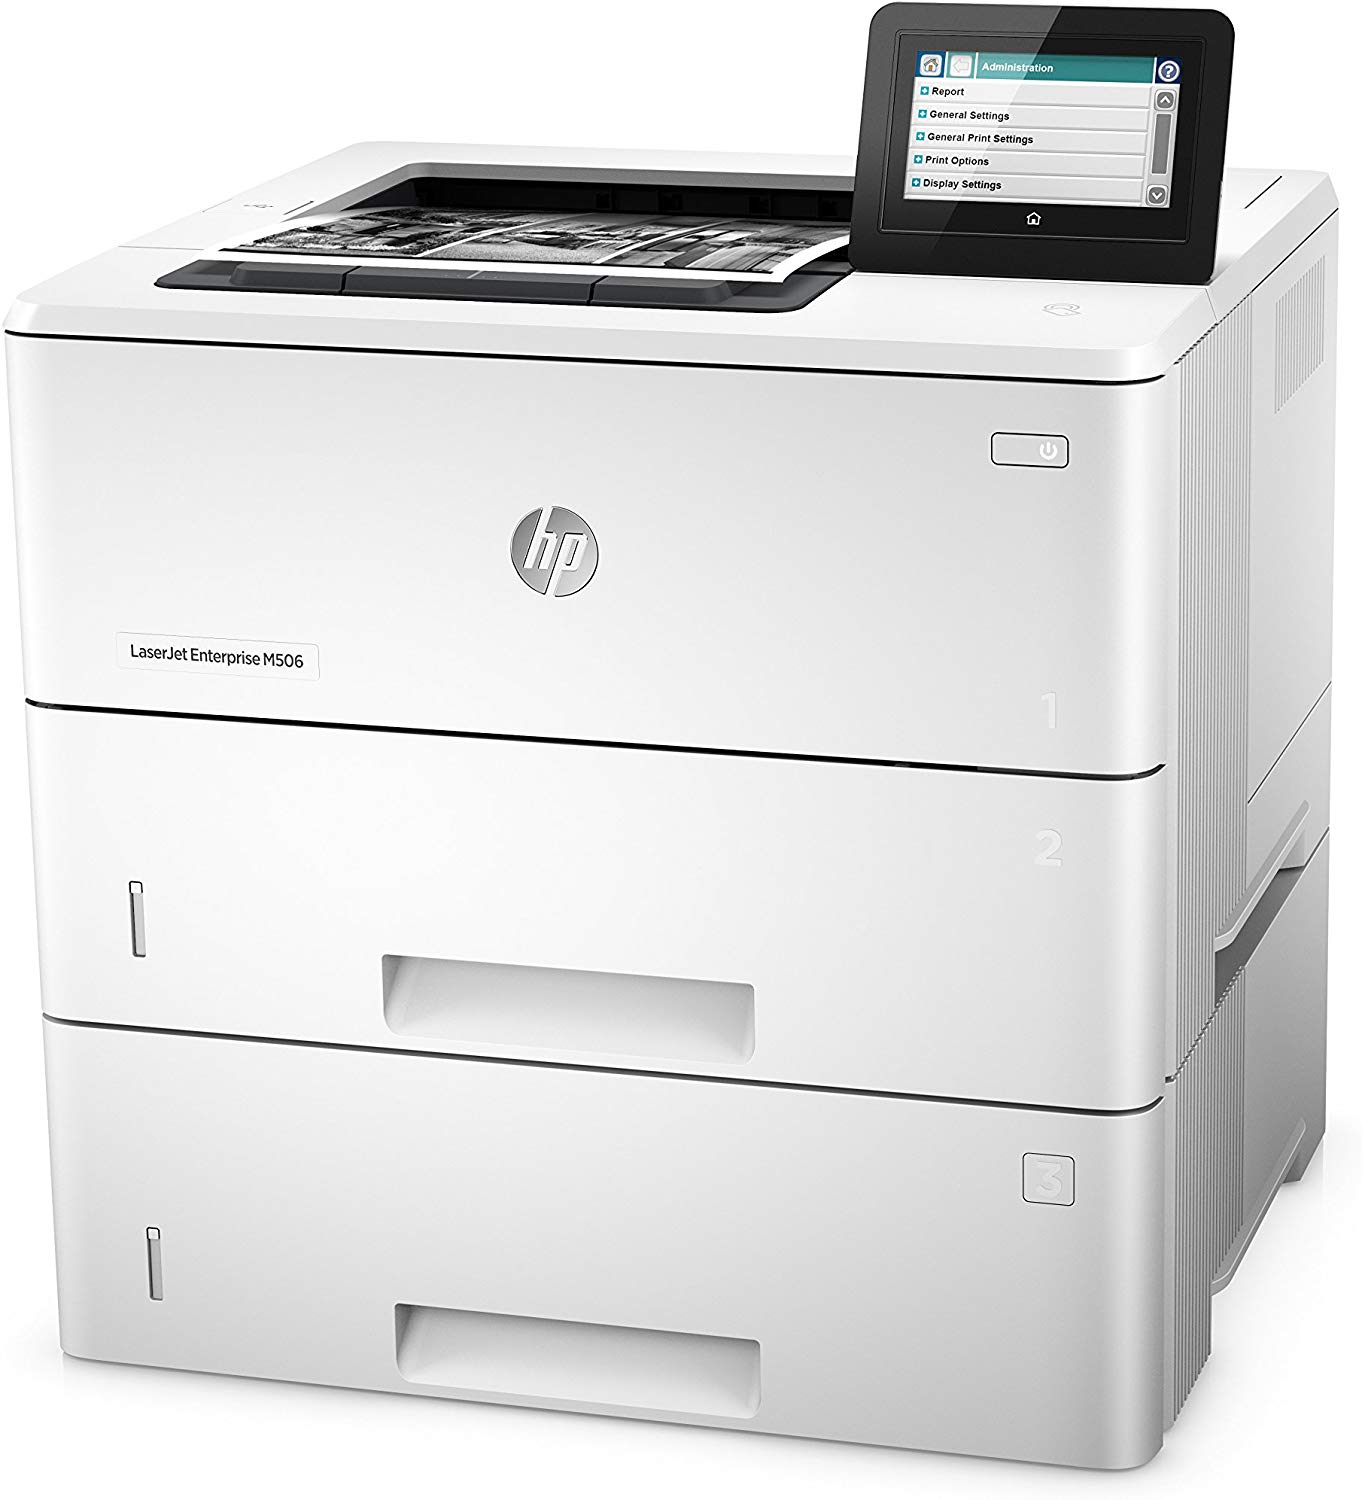 HP LaserJet Managed M506xm Mono Laser Printer, Refurbished (F2A67A)